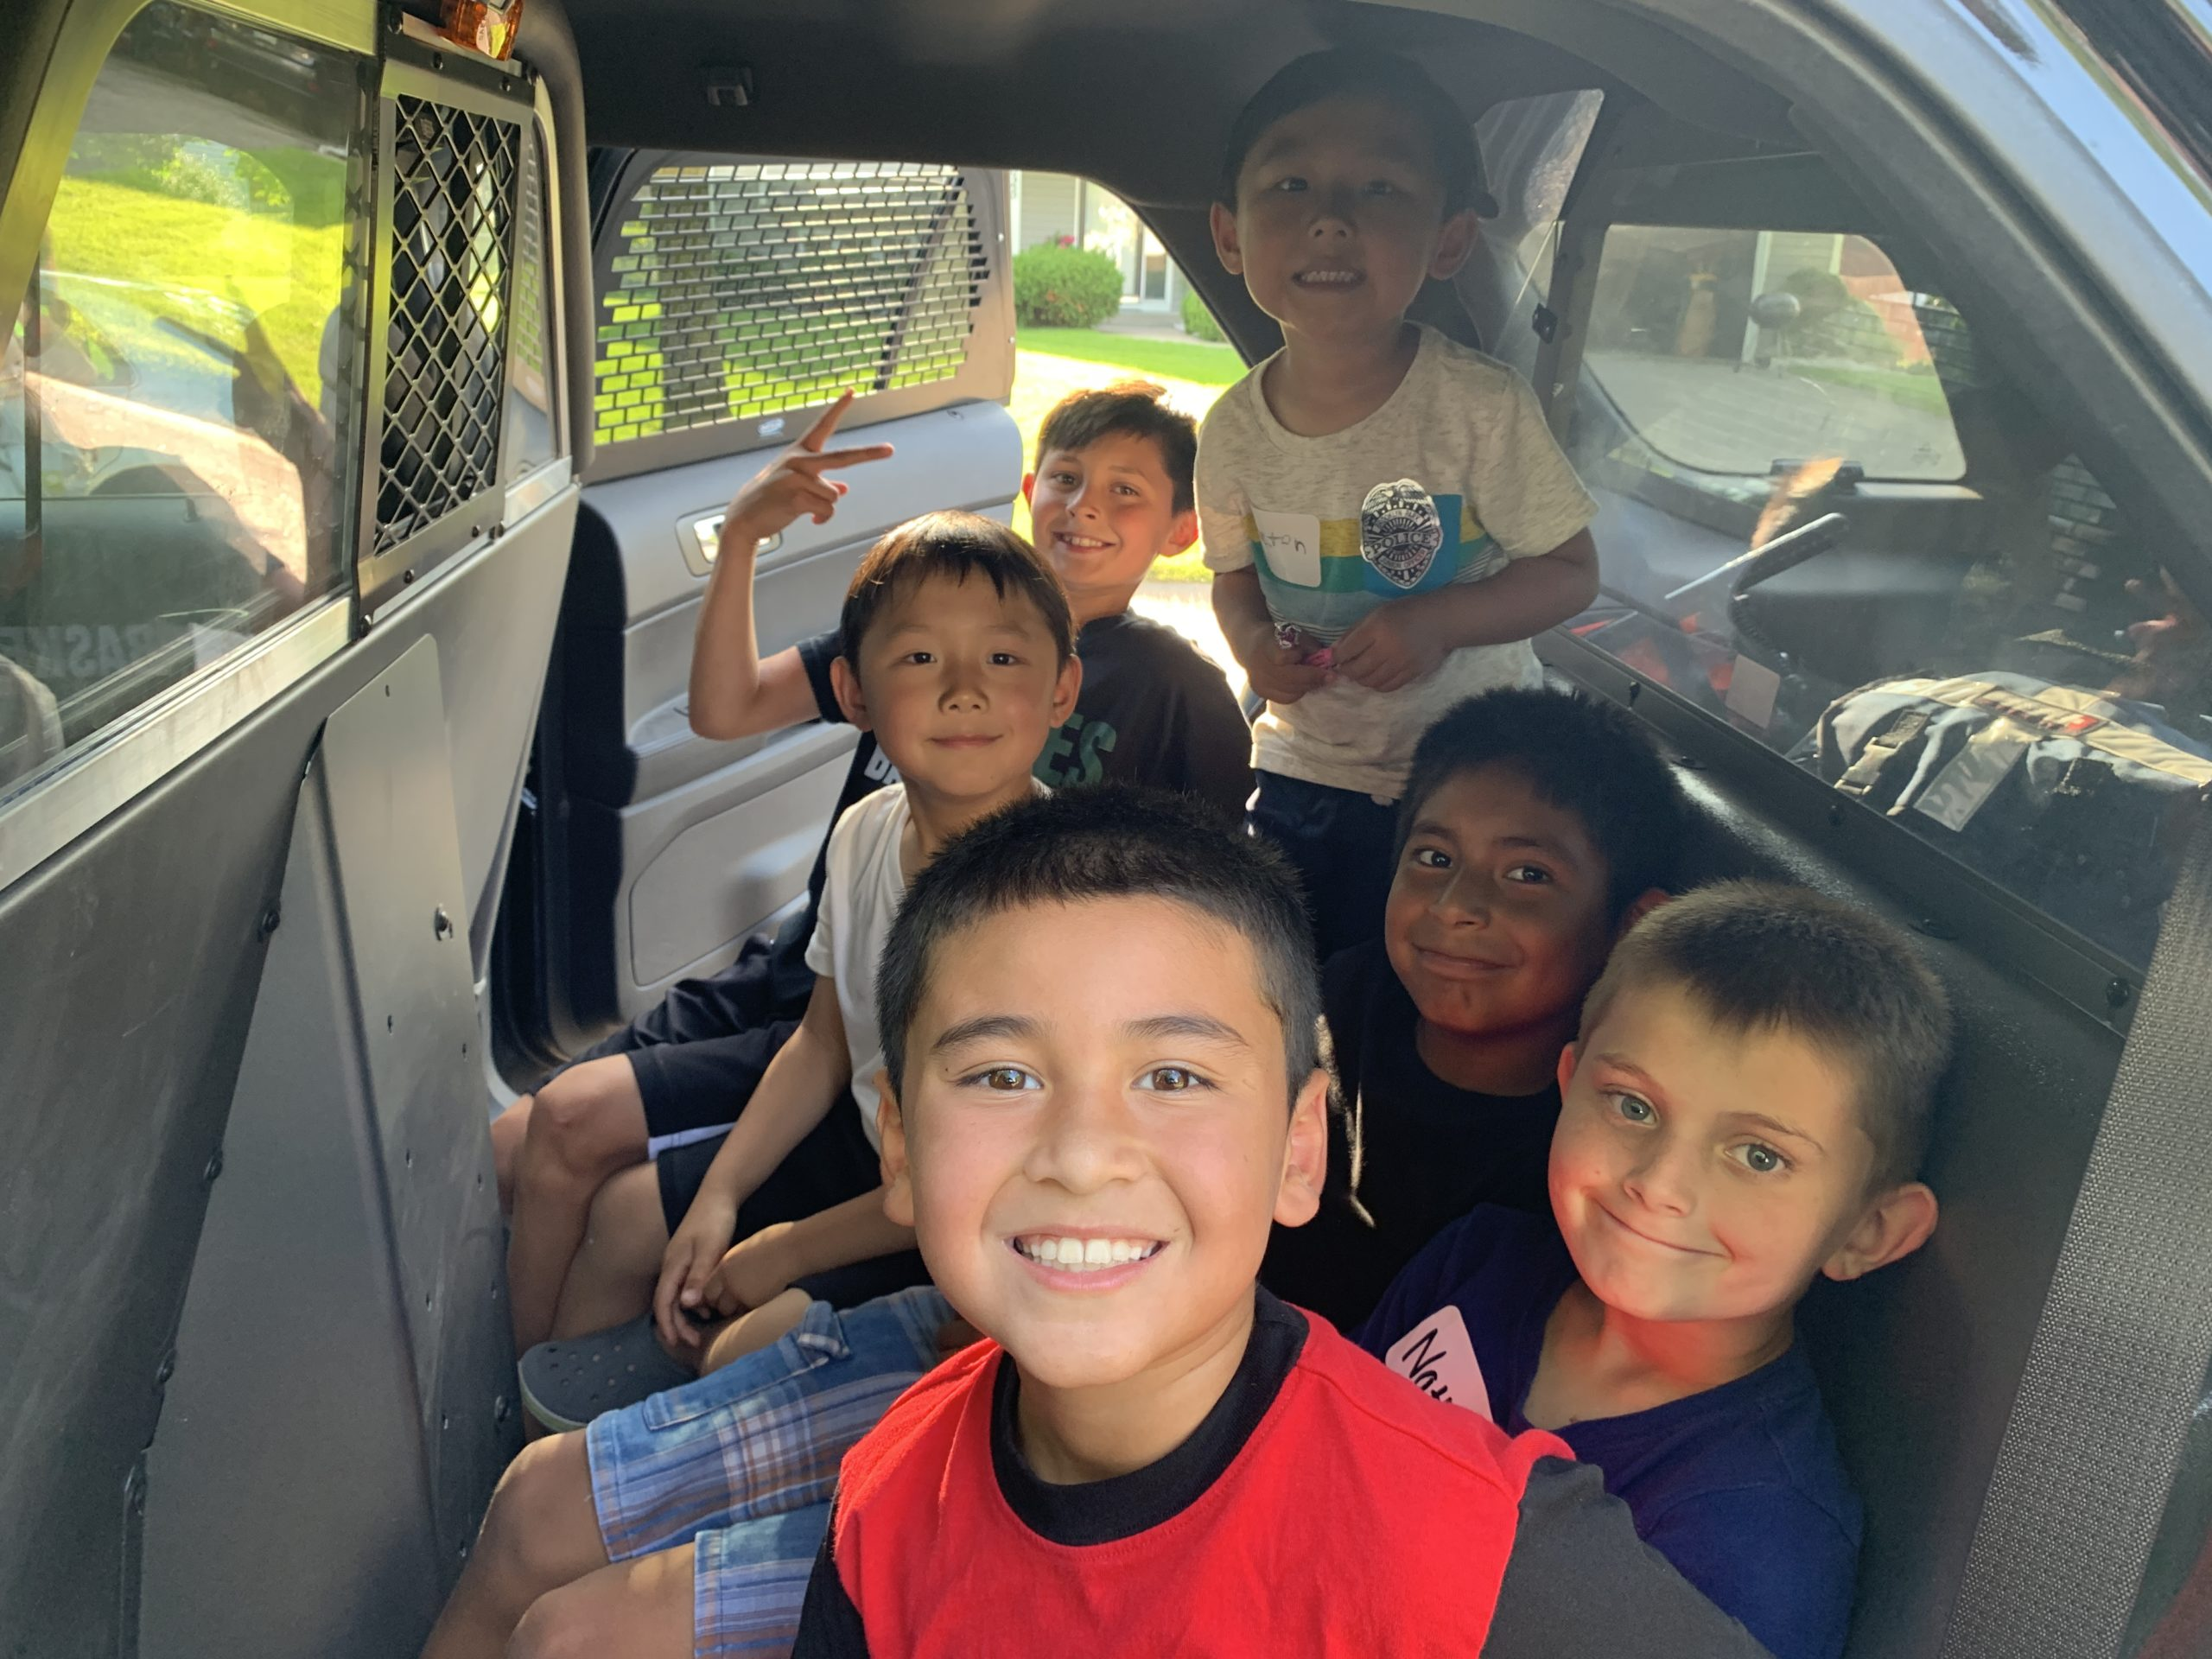 kids in the back of a police car smiling